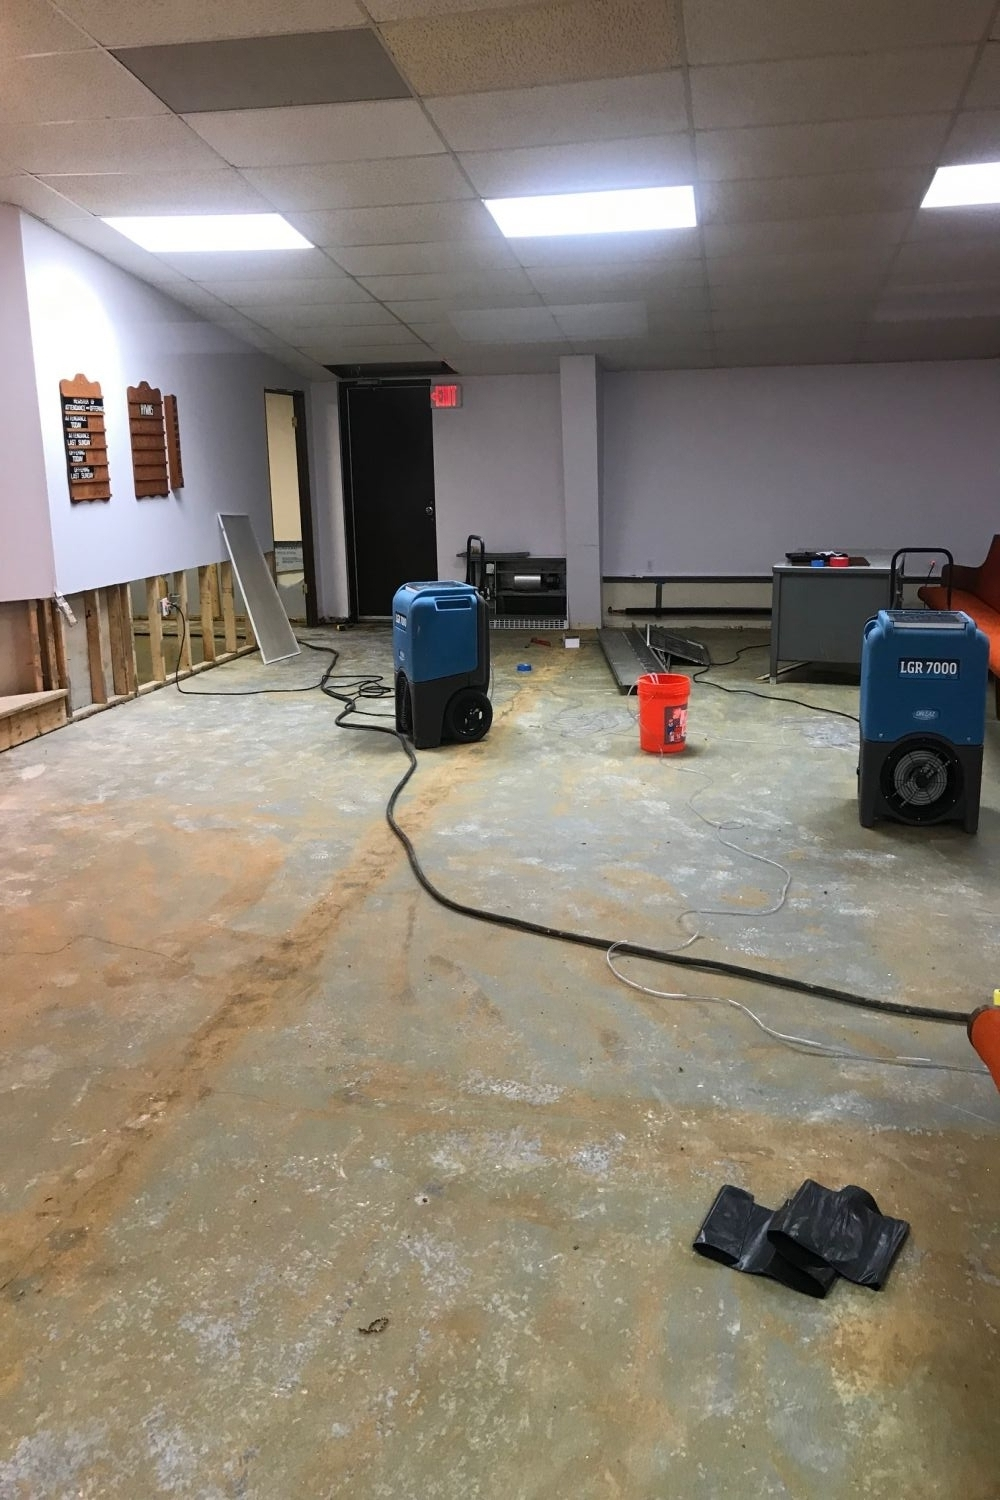 Schuhs cleaning services we clean it up carpet cleaning allergy oder services tile floor cleaning wood floor restoring construction cleaning move in move out cleaning janitorial maintenance services dailygadgetfo Gallery